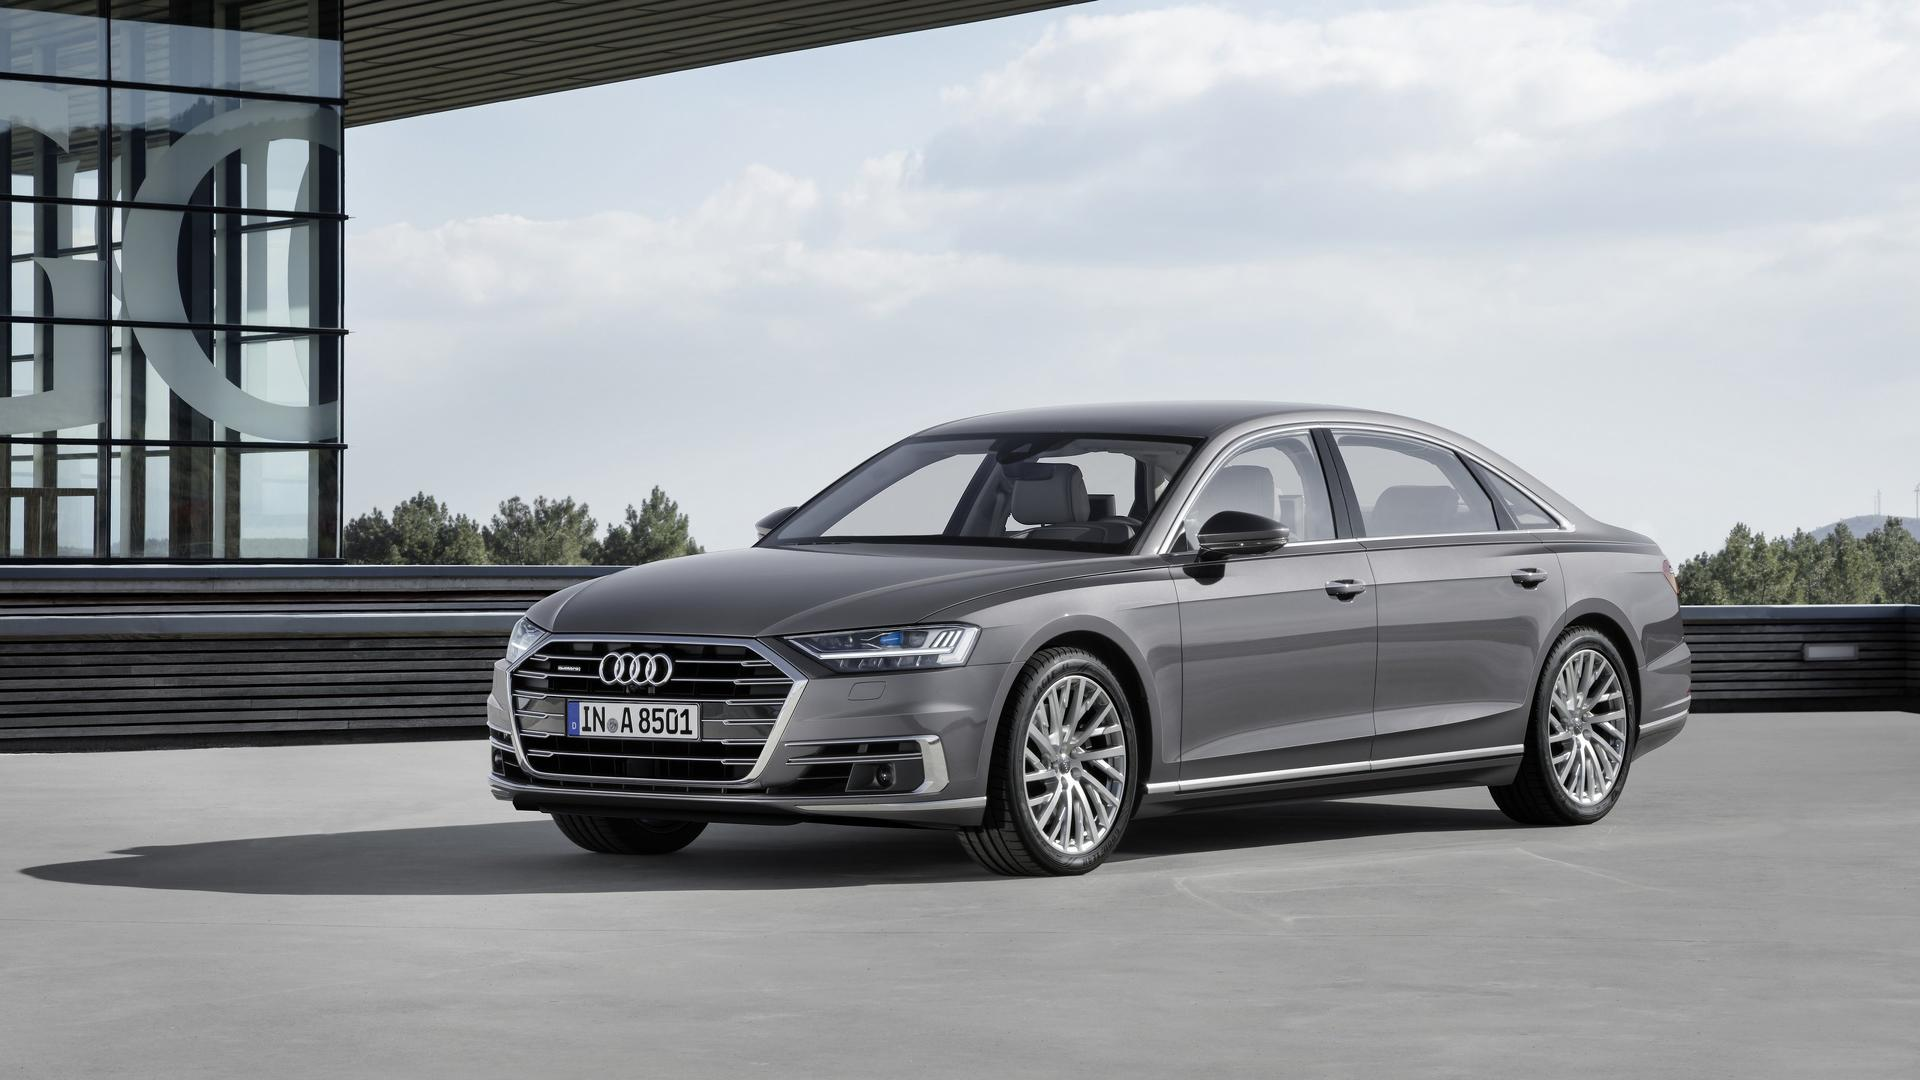 Audi A8 News And Reviews Motor1 Com